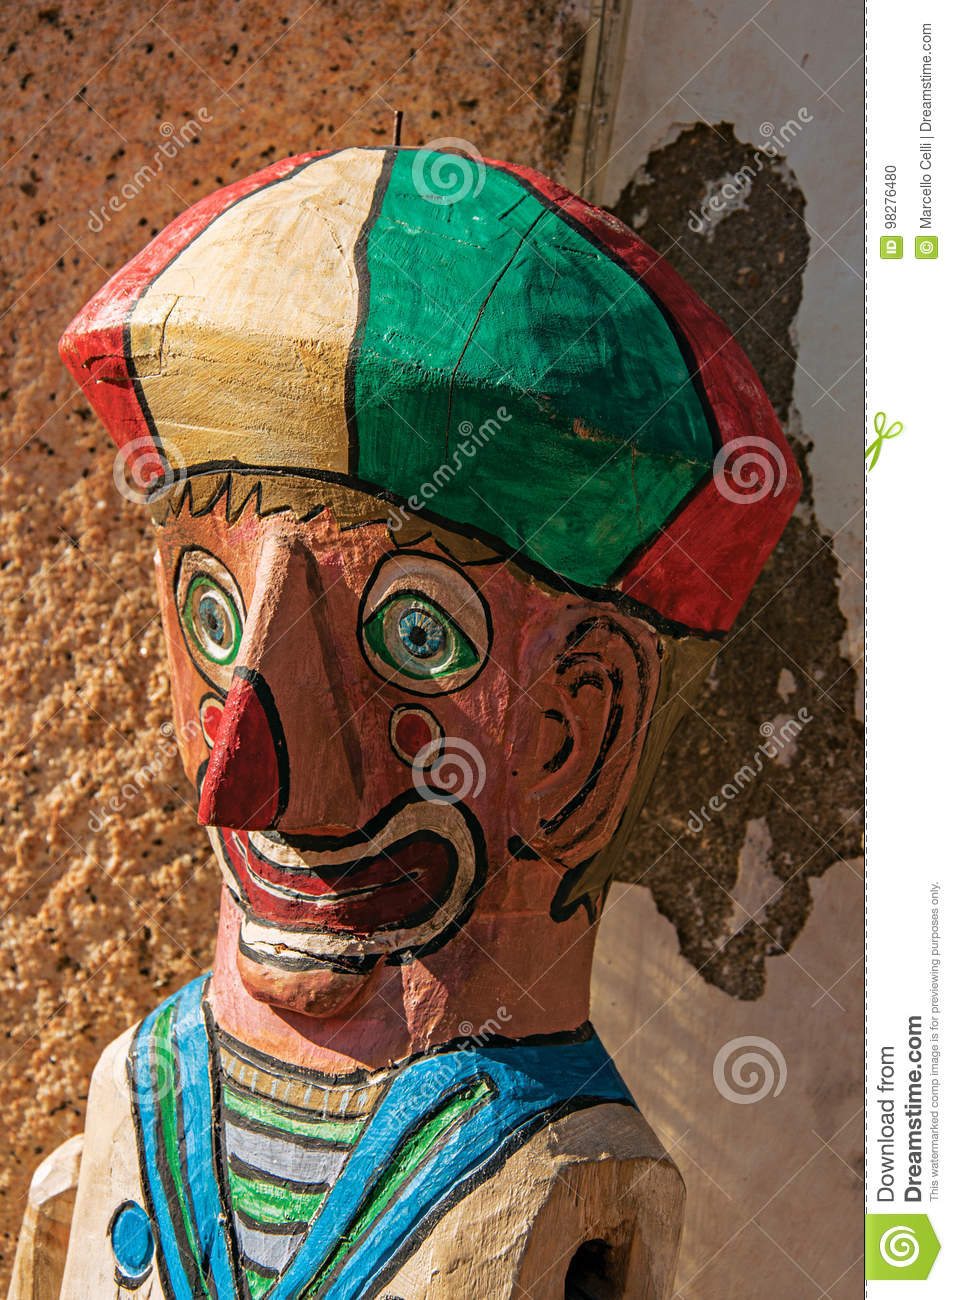 Close-up of colorful wooden puppet reminding a clown in Paraty.